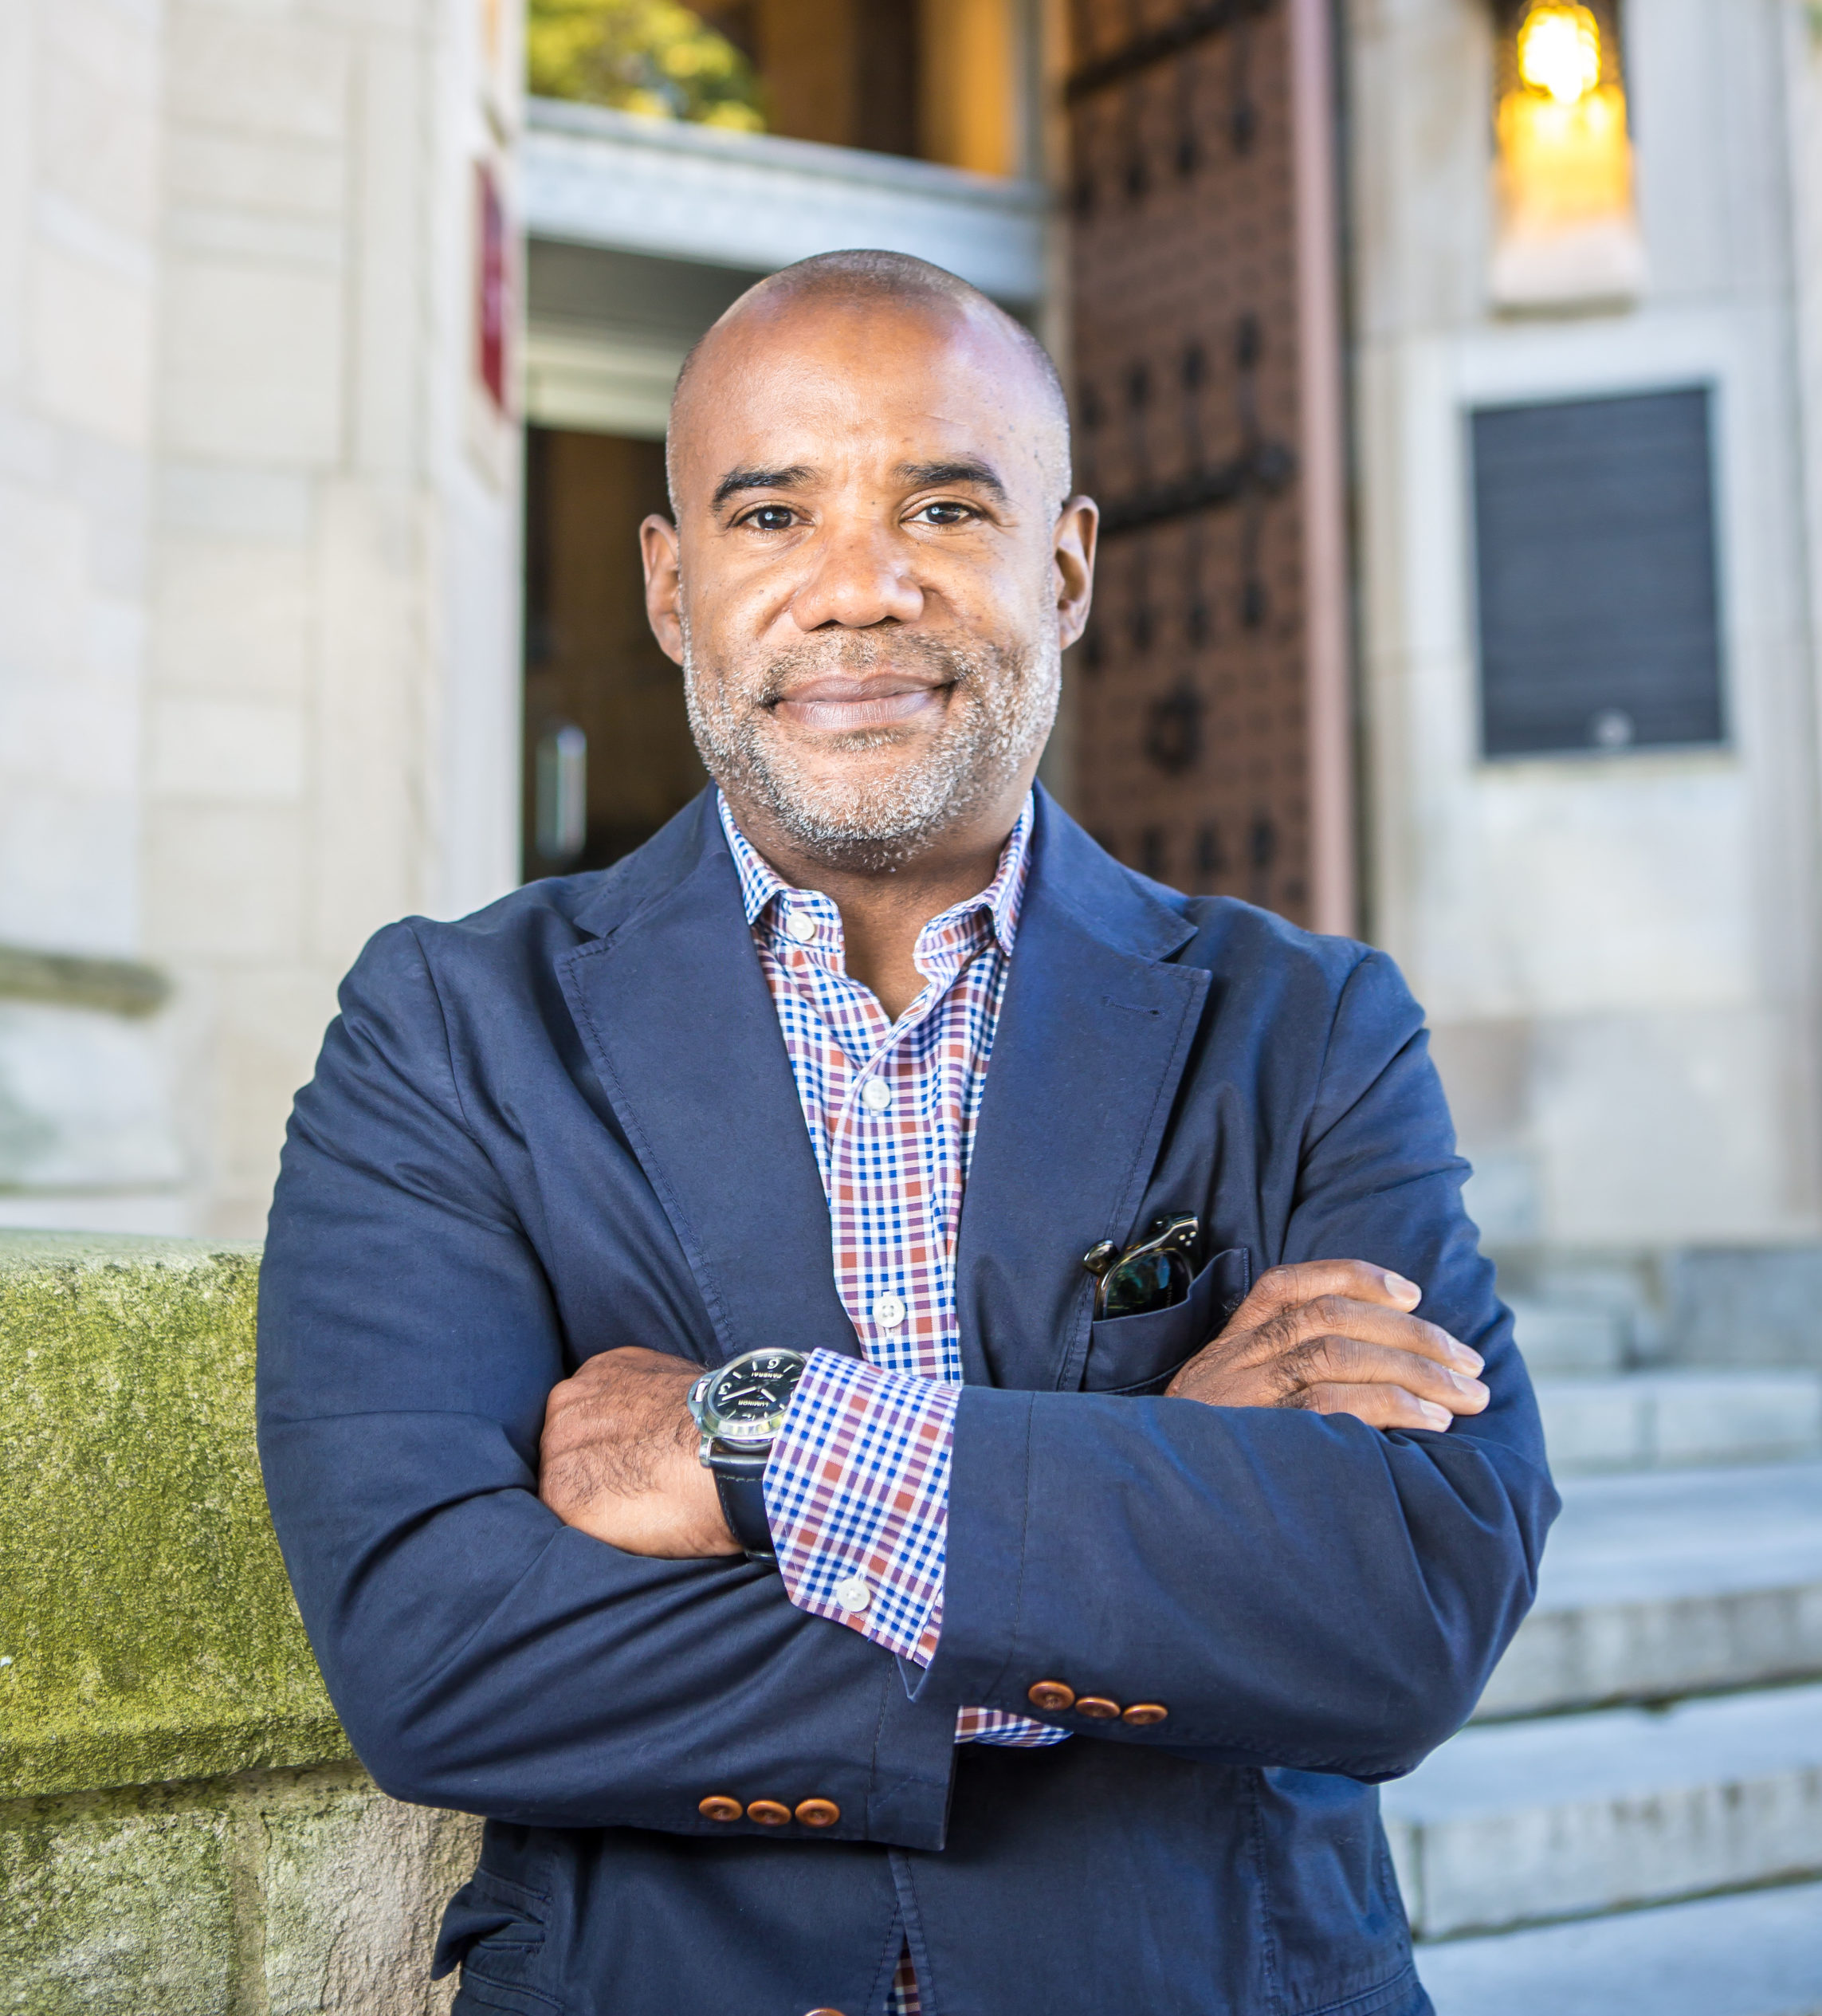 Portrait of Bryan Samuels, Executive Director of Chapin Hill, on Tuesday, August 23, 2016 at Chapin Hall on the University of Chicago campus. (Photo by Nancy Wong)